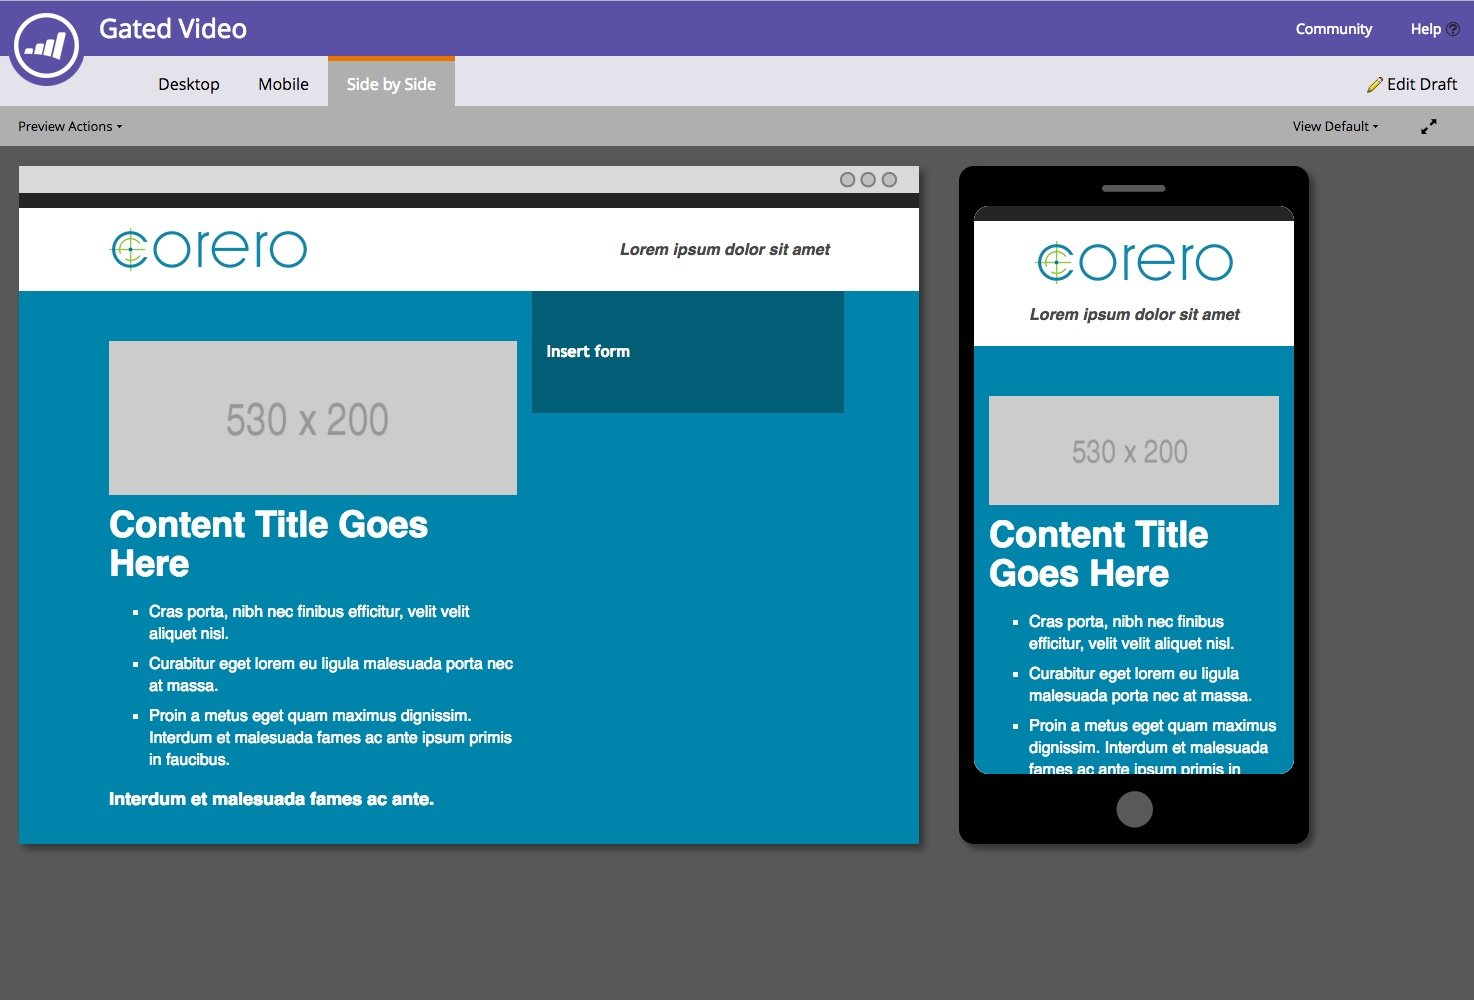 Marketo Guided Templates, Landing page designs for Registration, White Papers, Gated Video, Webinars…and more